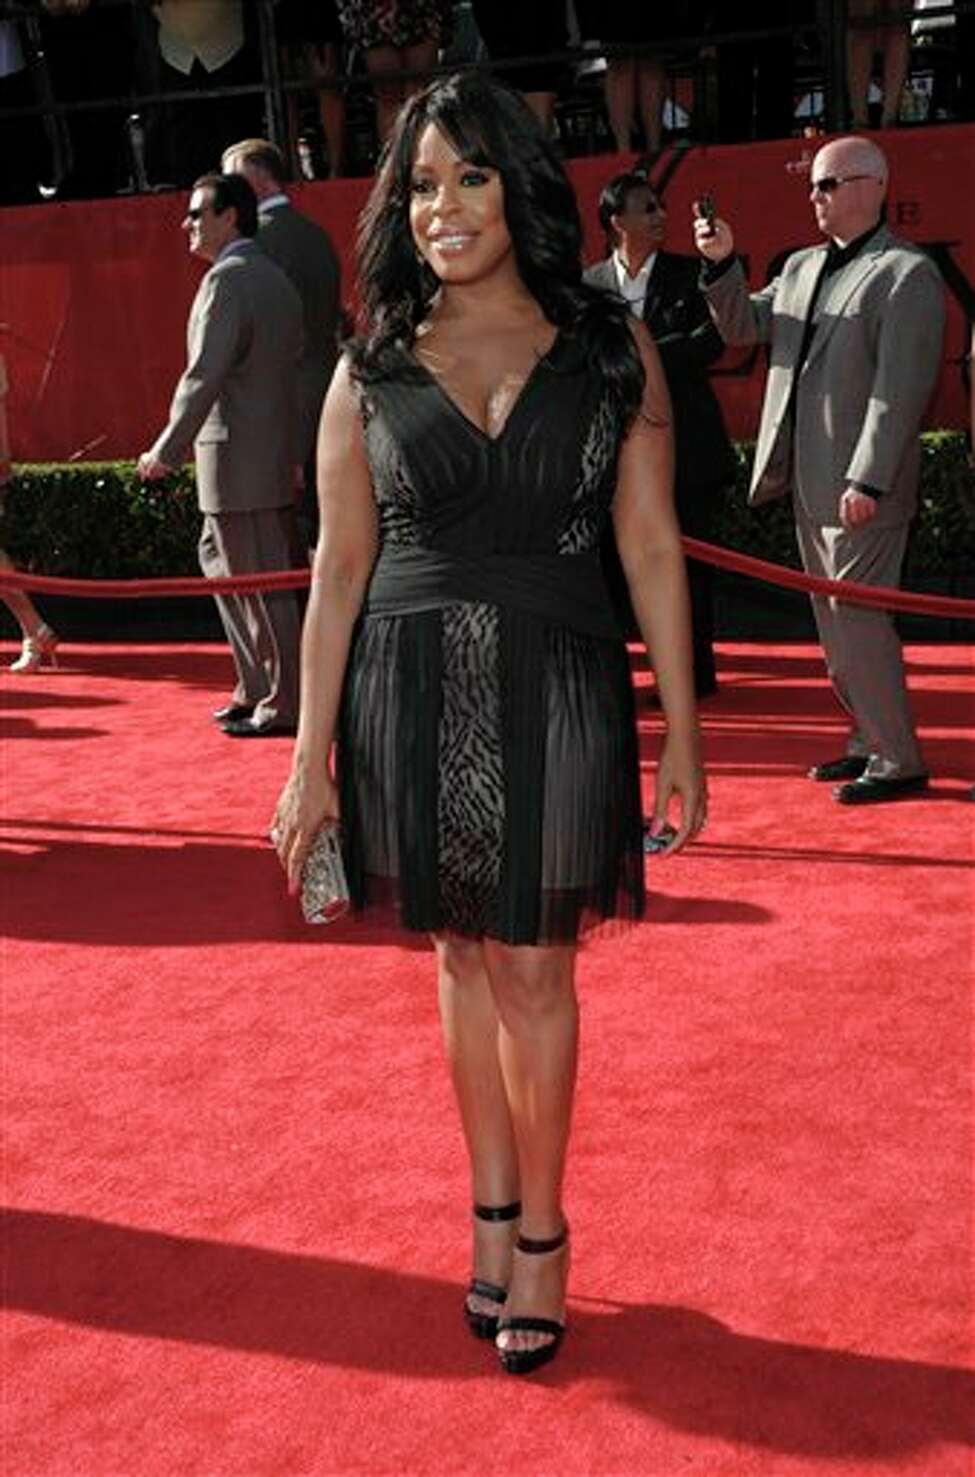 Comedian Niecy Nash arrives at the ESPY awards on Wednesday, July 13, 2011, in Los Angeles. (AP Photo/Dan Steinberg)